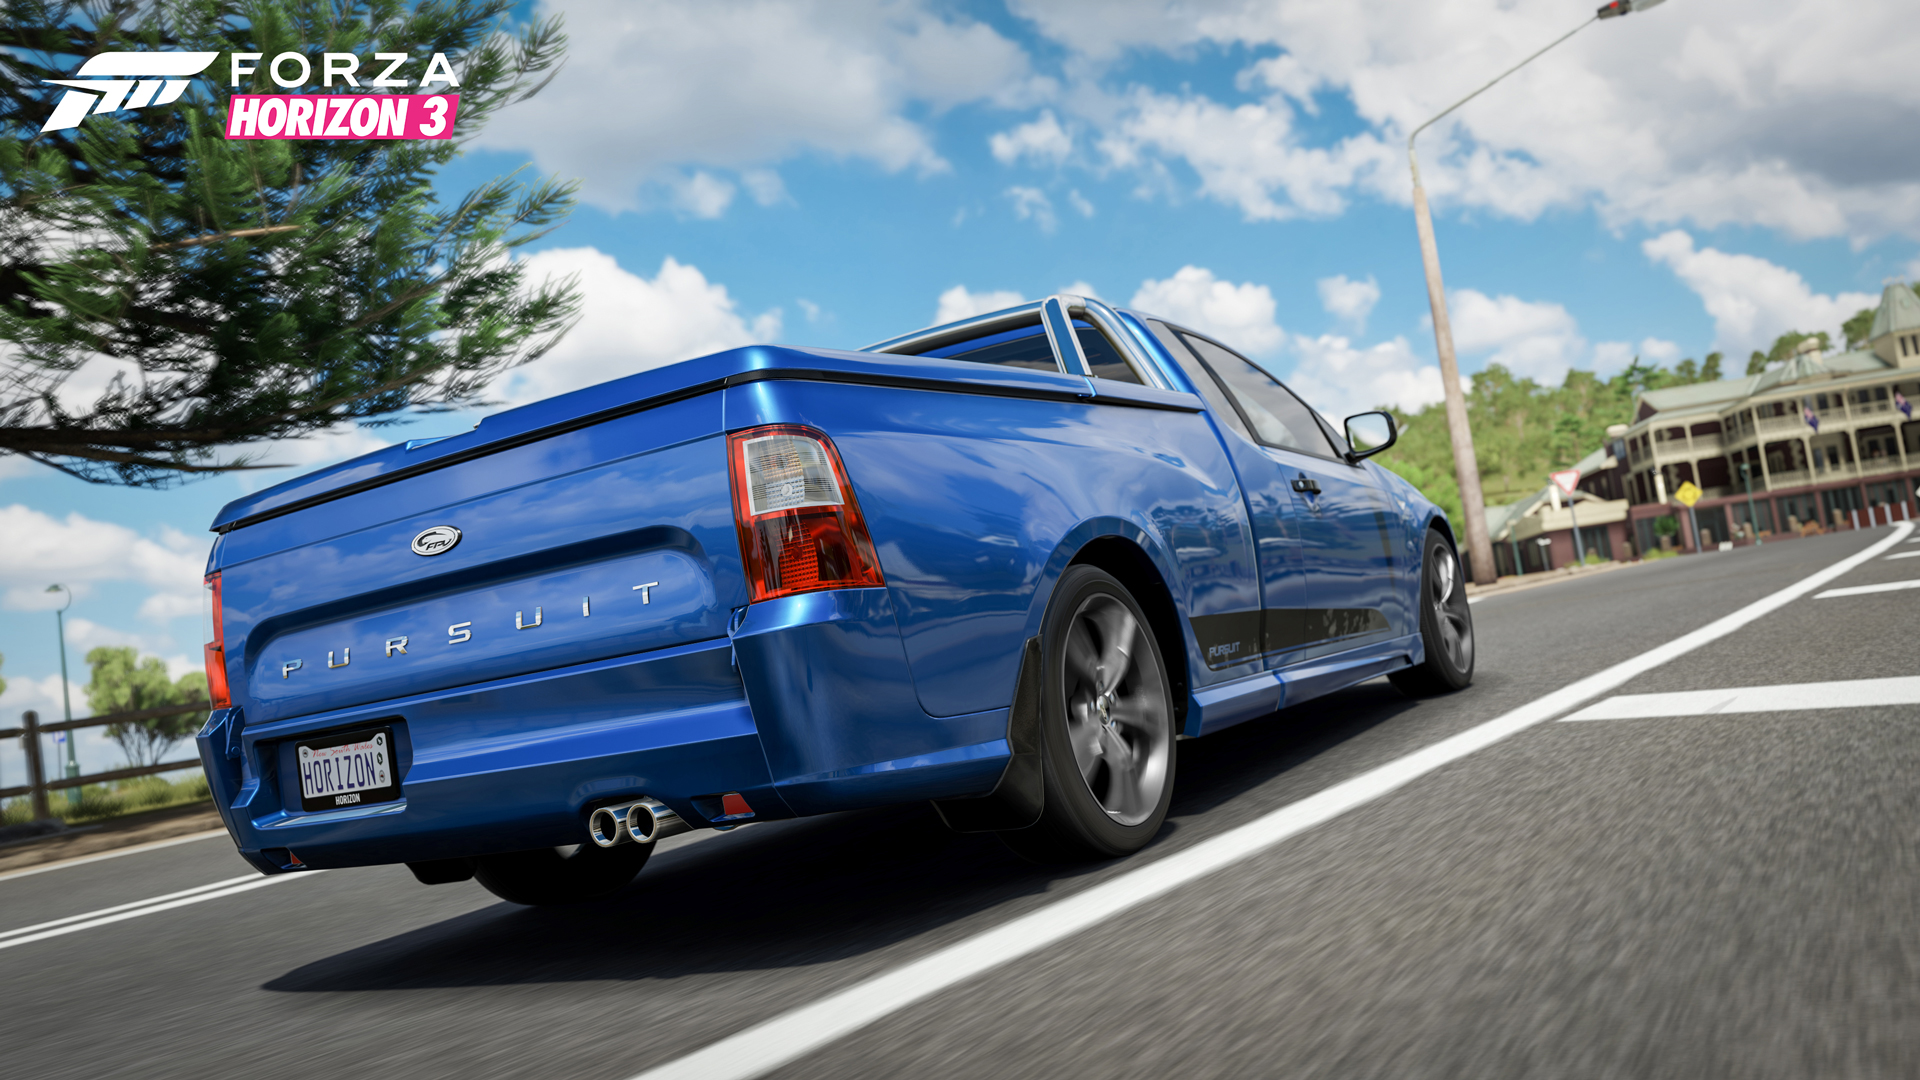 2014 Ford FPV Limited Edition Pursuit Ute